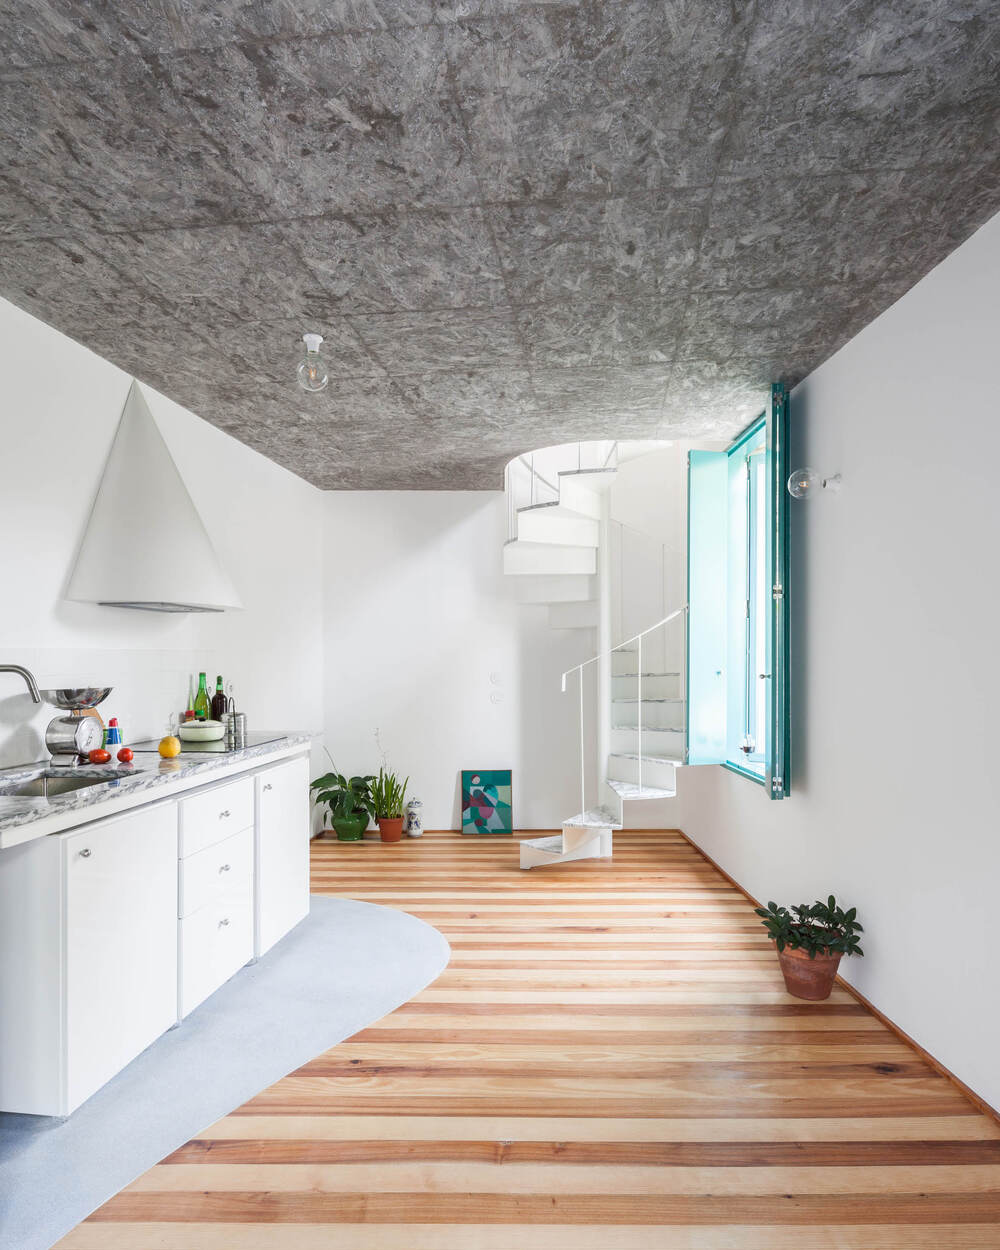 The kitchen has a counter on the isde by the wall that has built-in cabinets and drawers topped with a simple vent hood above.